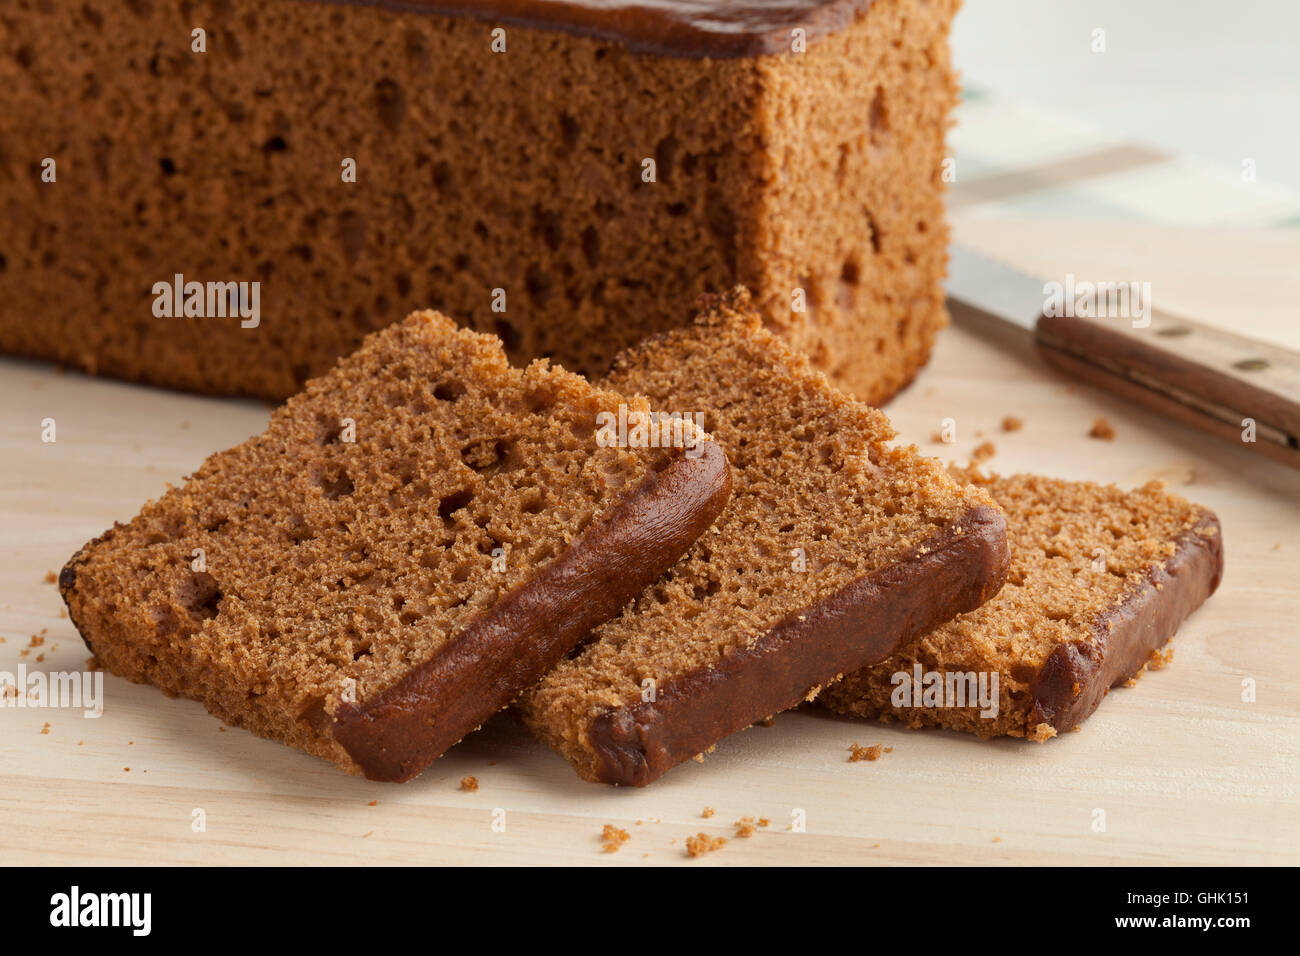 Traditional dutch breakfast cake cut into slices - Stock Image